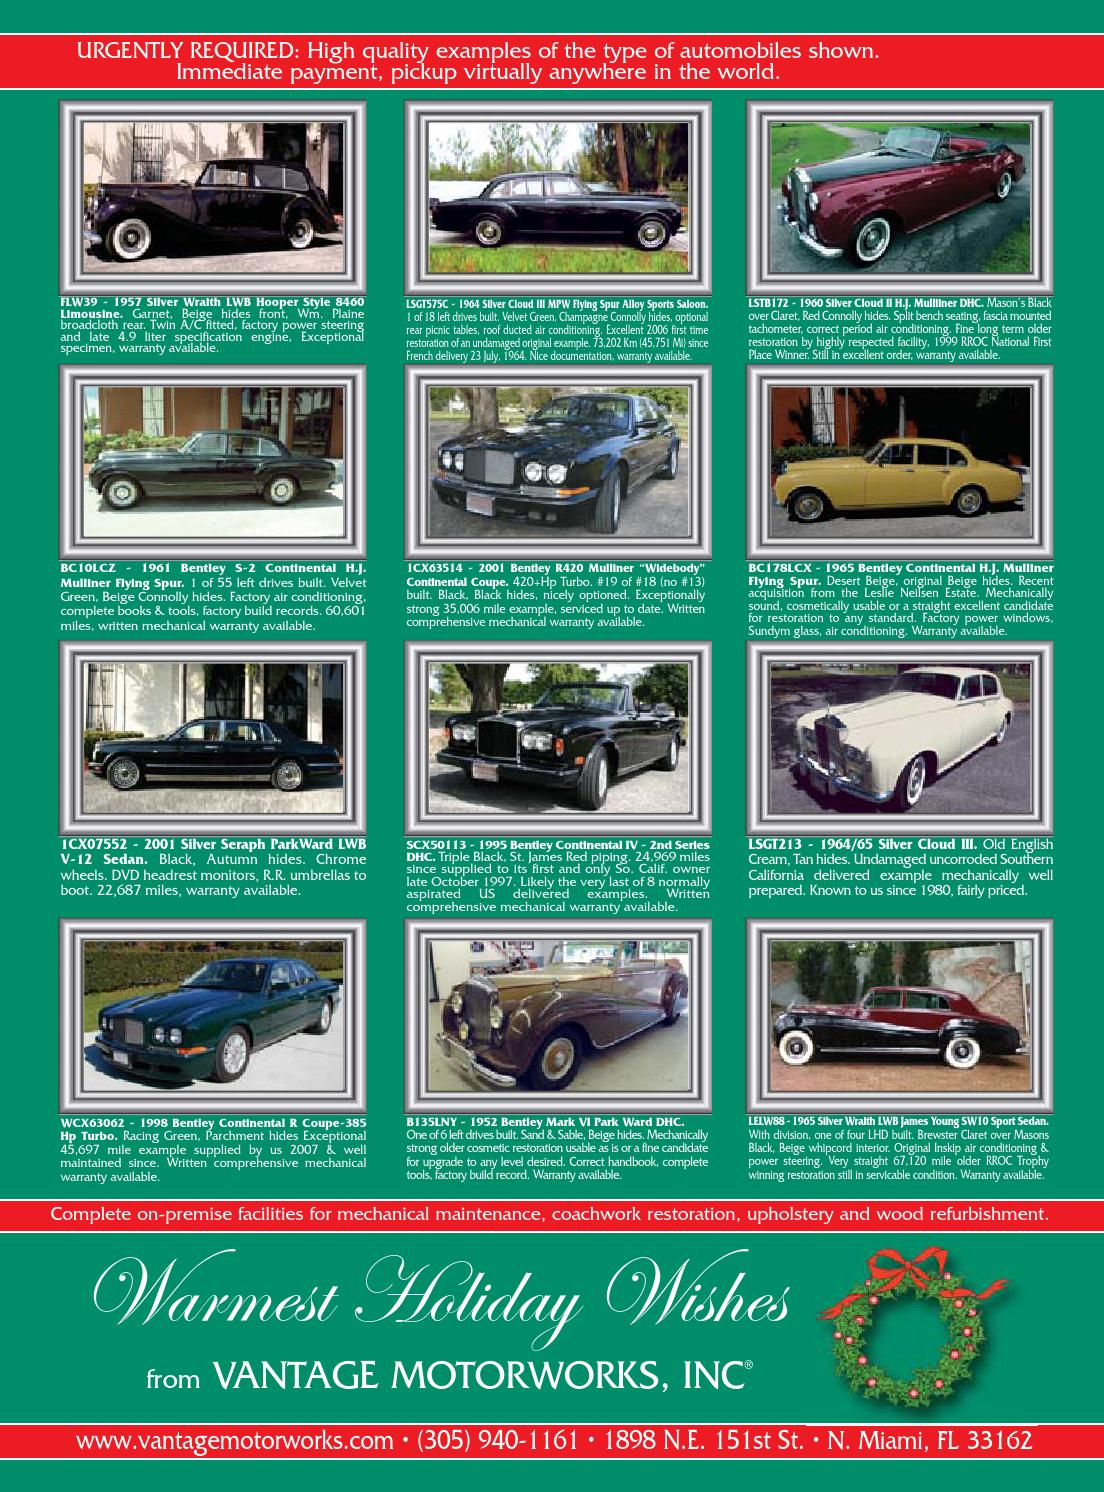 duPontREGISTRY Autos December 2013 by duPont REGISTRY - issuu